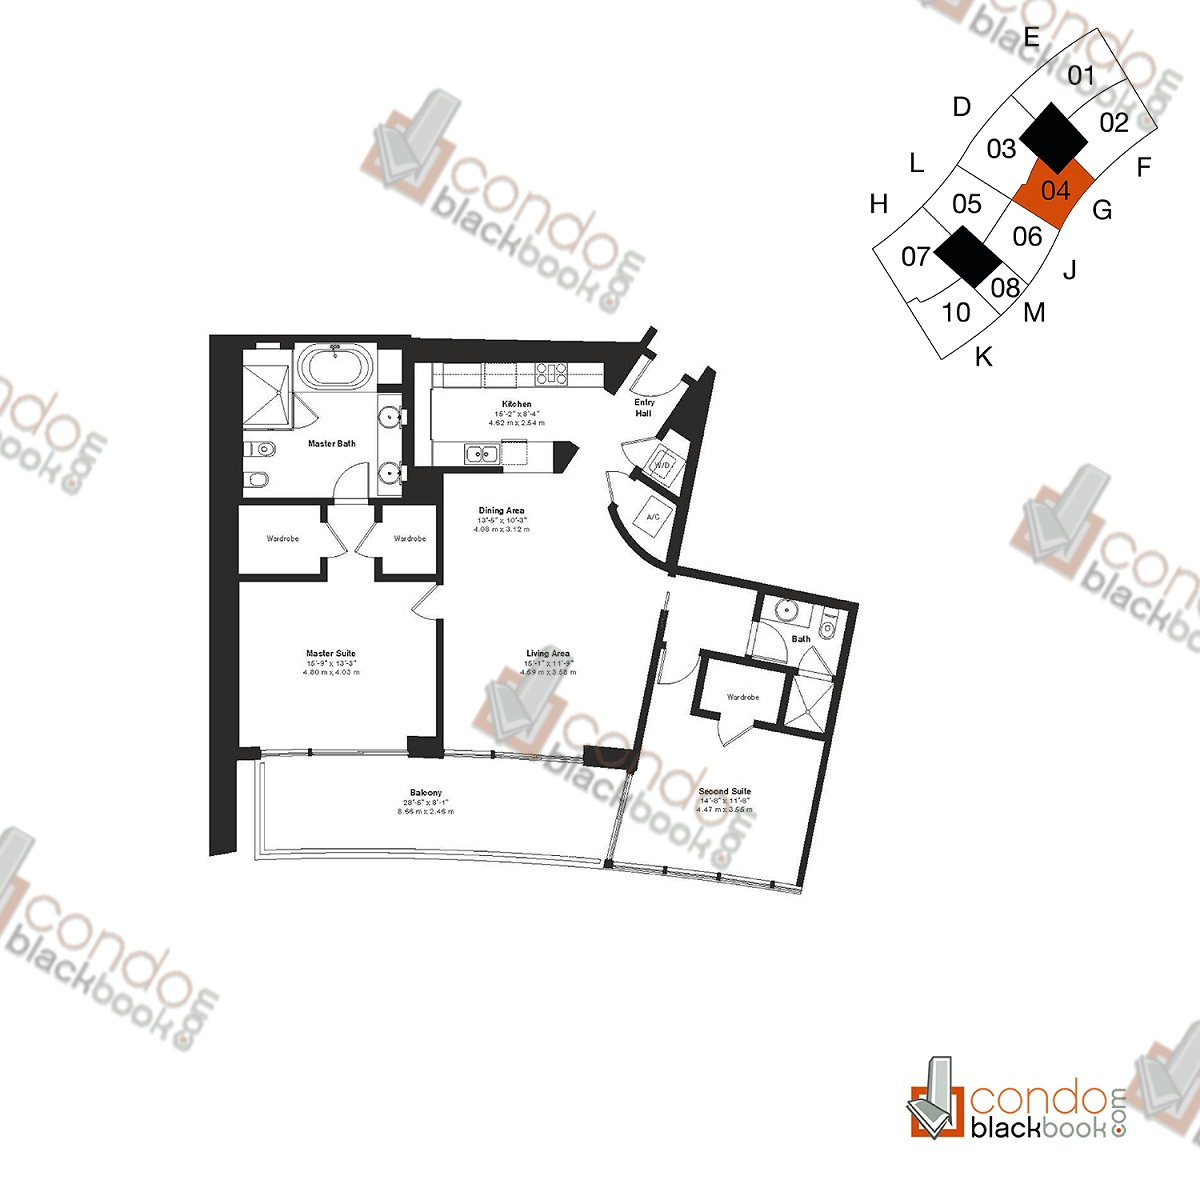 Floor plan for ICON South Beach South Beach Miami Beach, model Residence G, line 04, 2/2 bedrooms, 1,563 sq ft